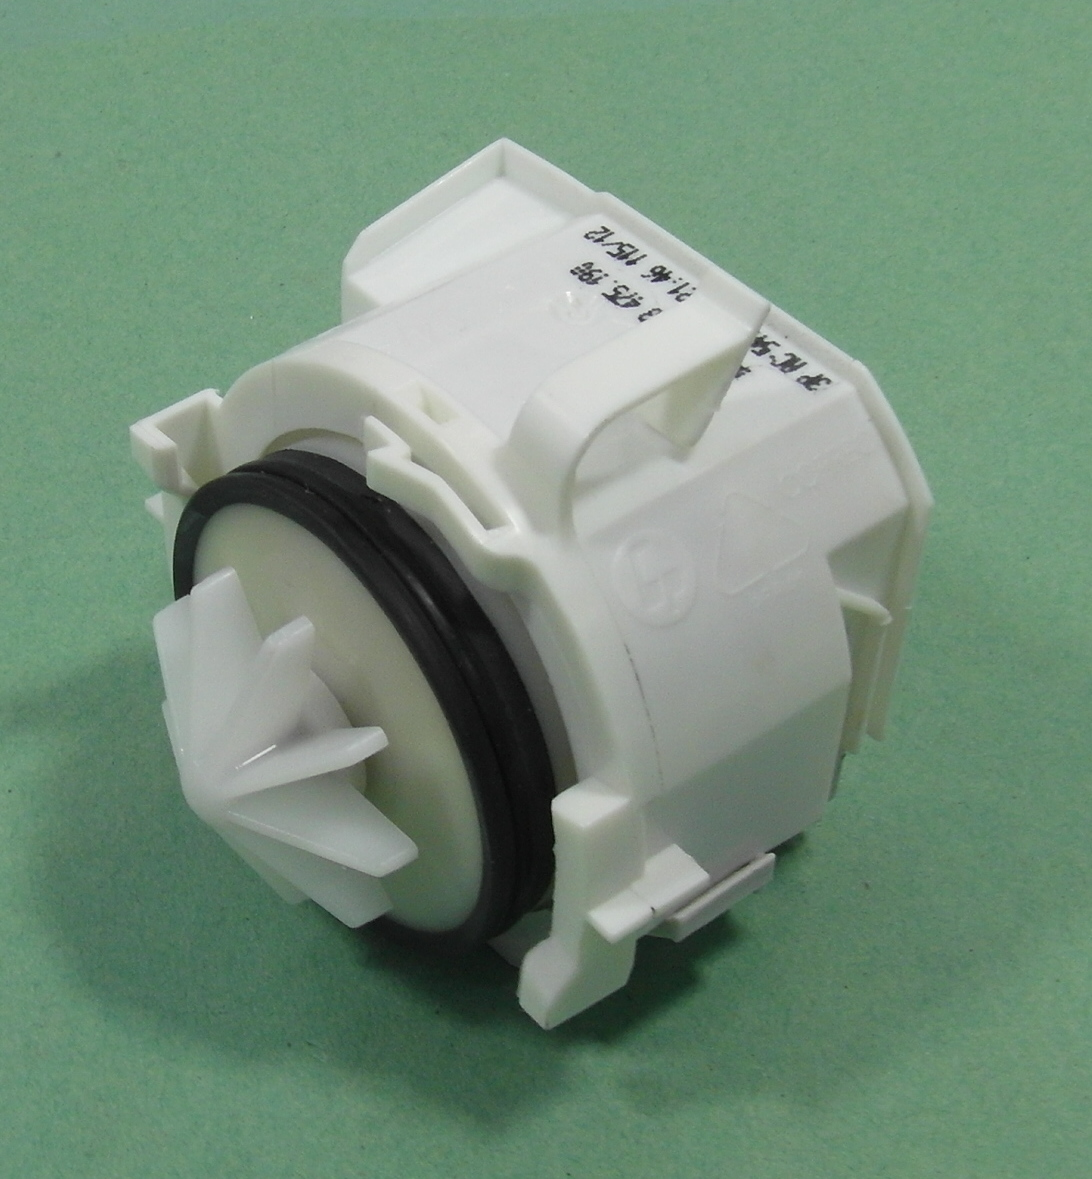 Bosch sms40t42uk 23 dishwasher drain pump ebay - Bosch dishwasher pump not draining ...